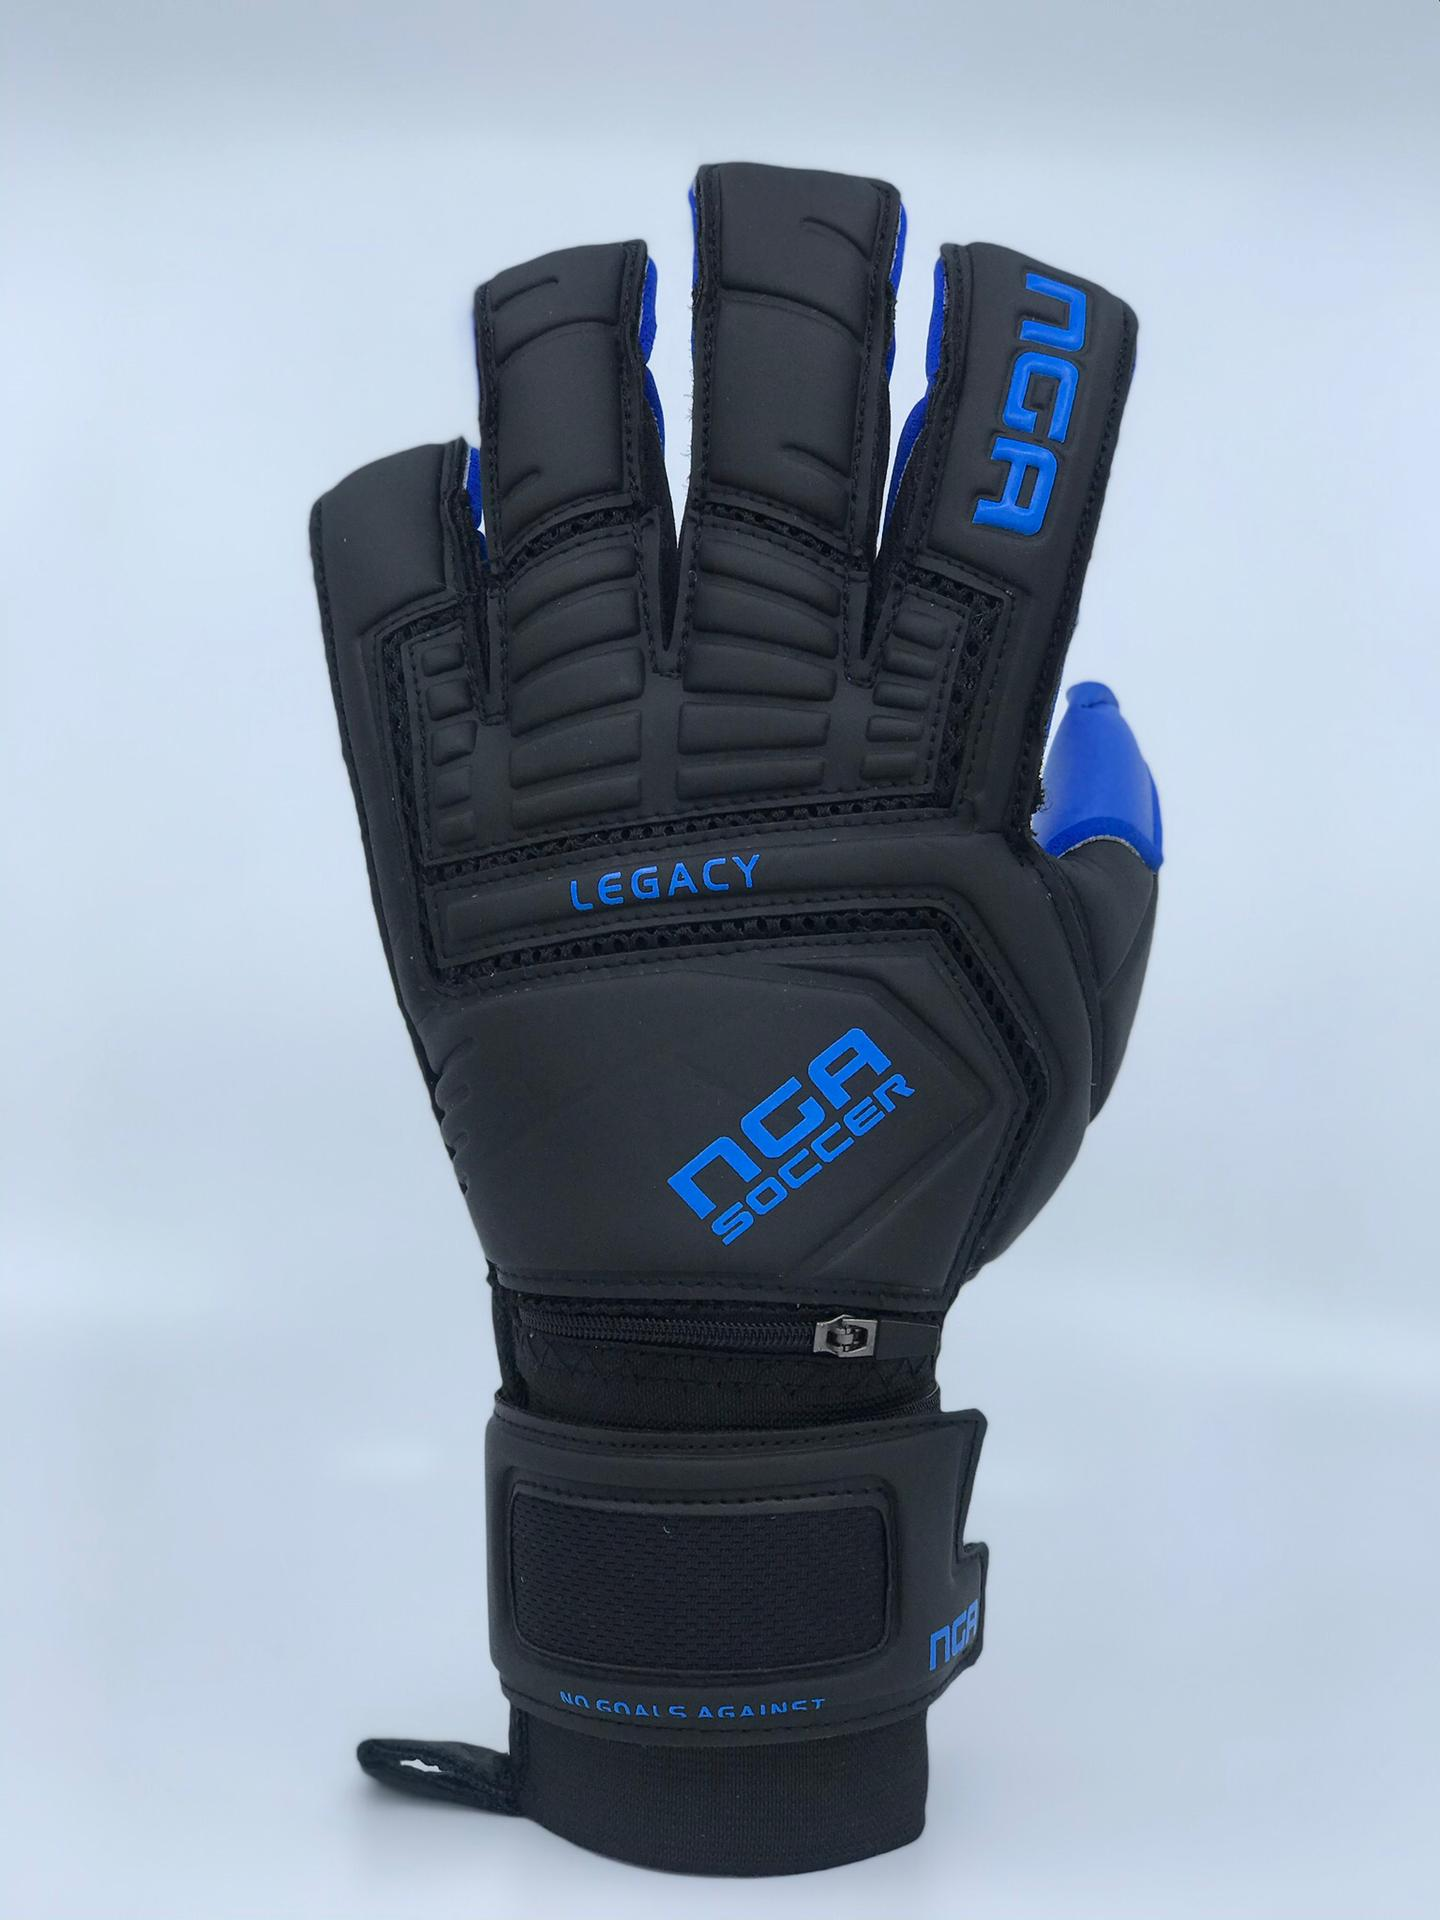 NGA Legacy Black/Blue